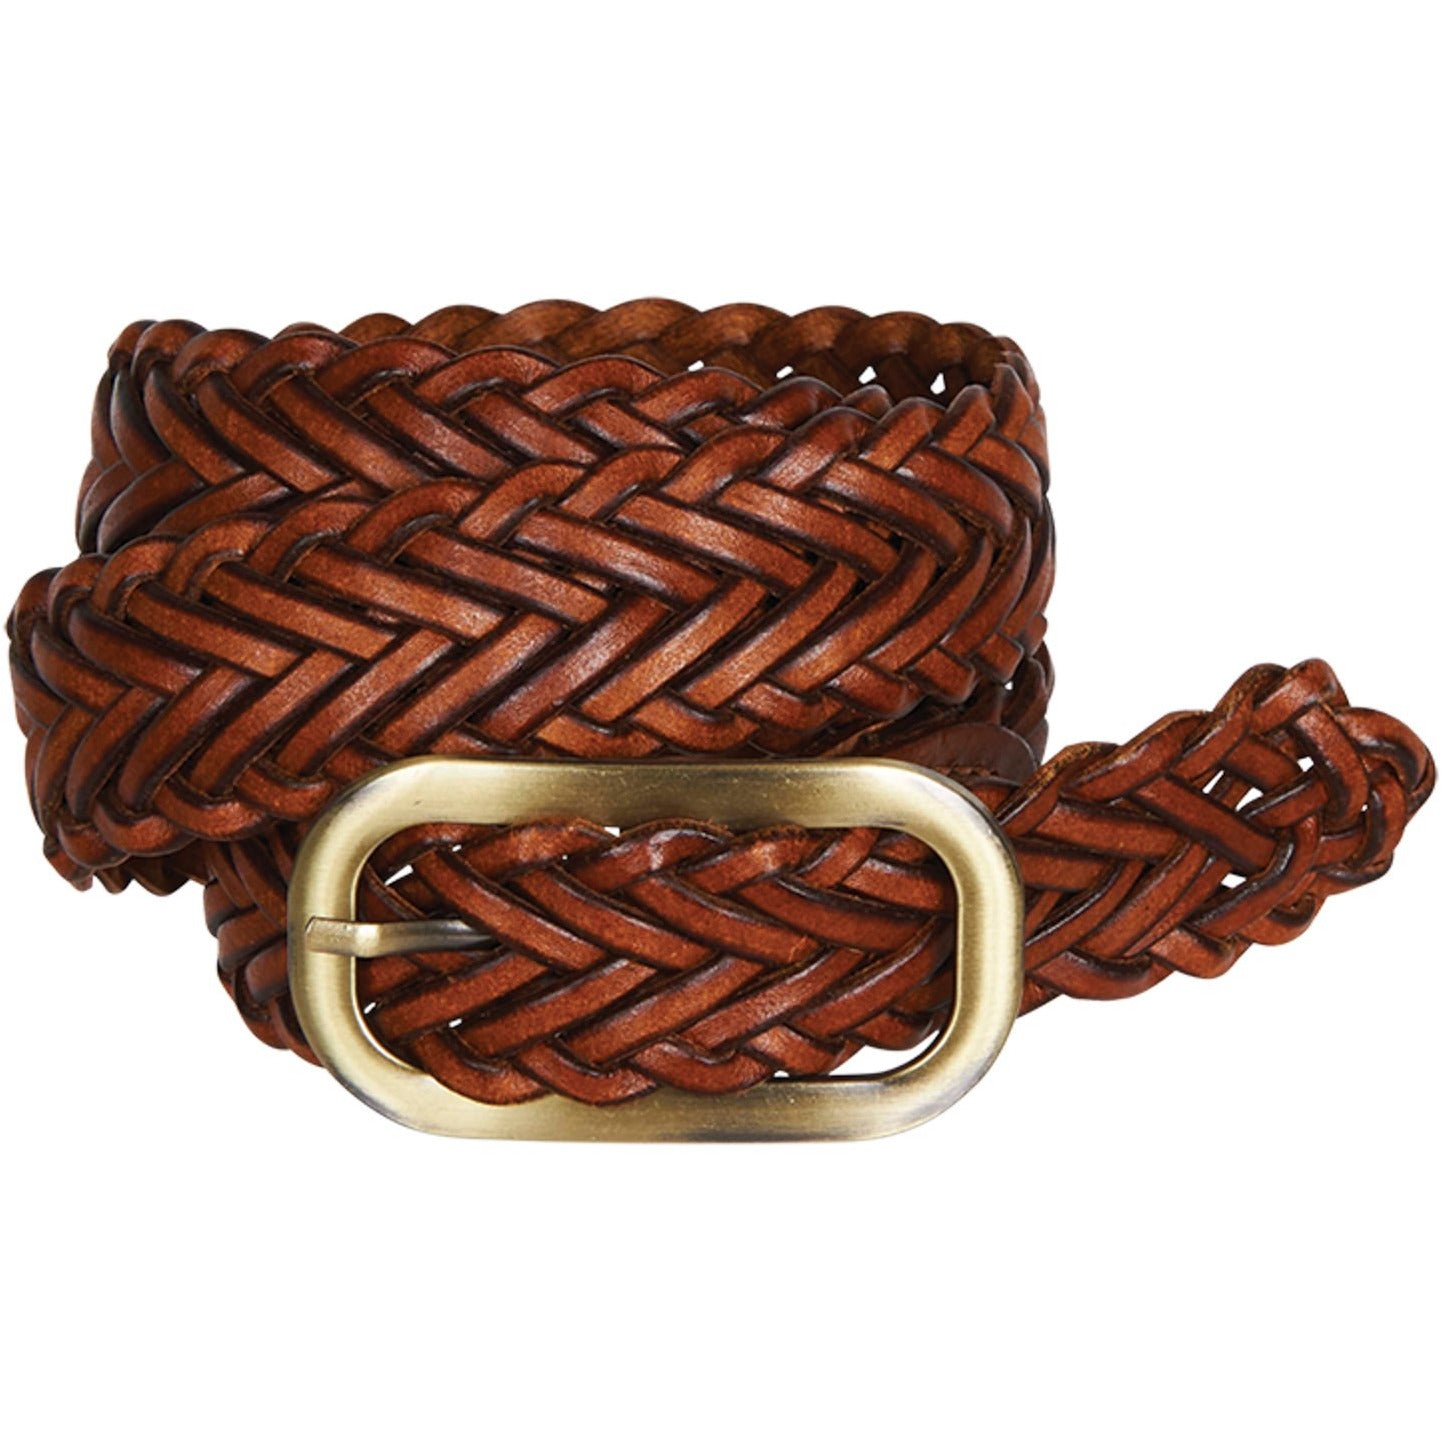 eb&ive Avante Belt in Caramel